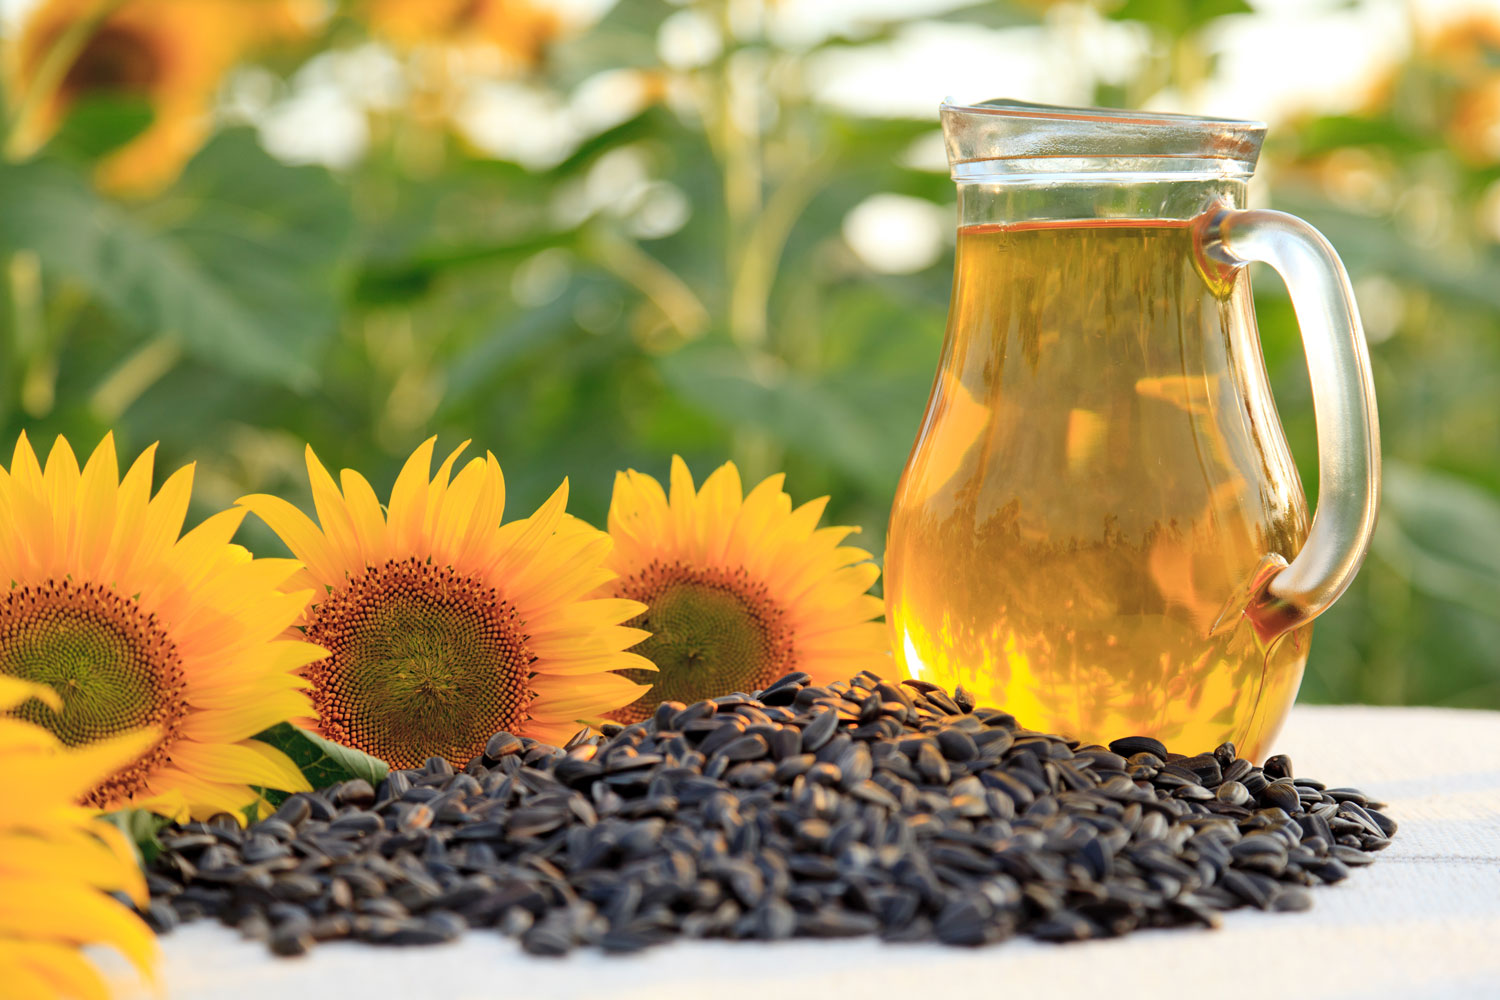 Sunflowers, sunflower seeds and a pitcher with sunflower oil on the table